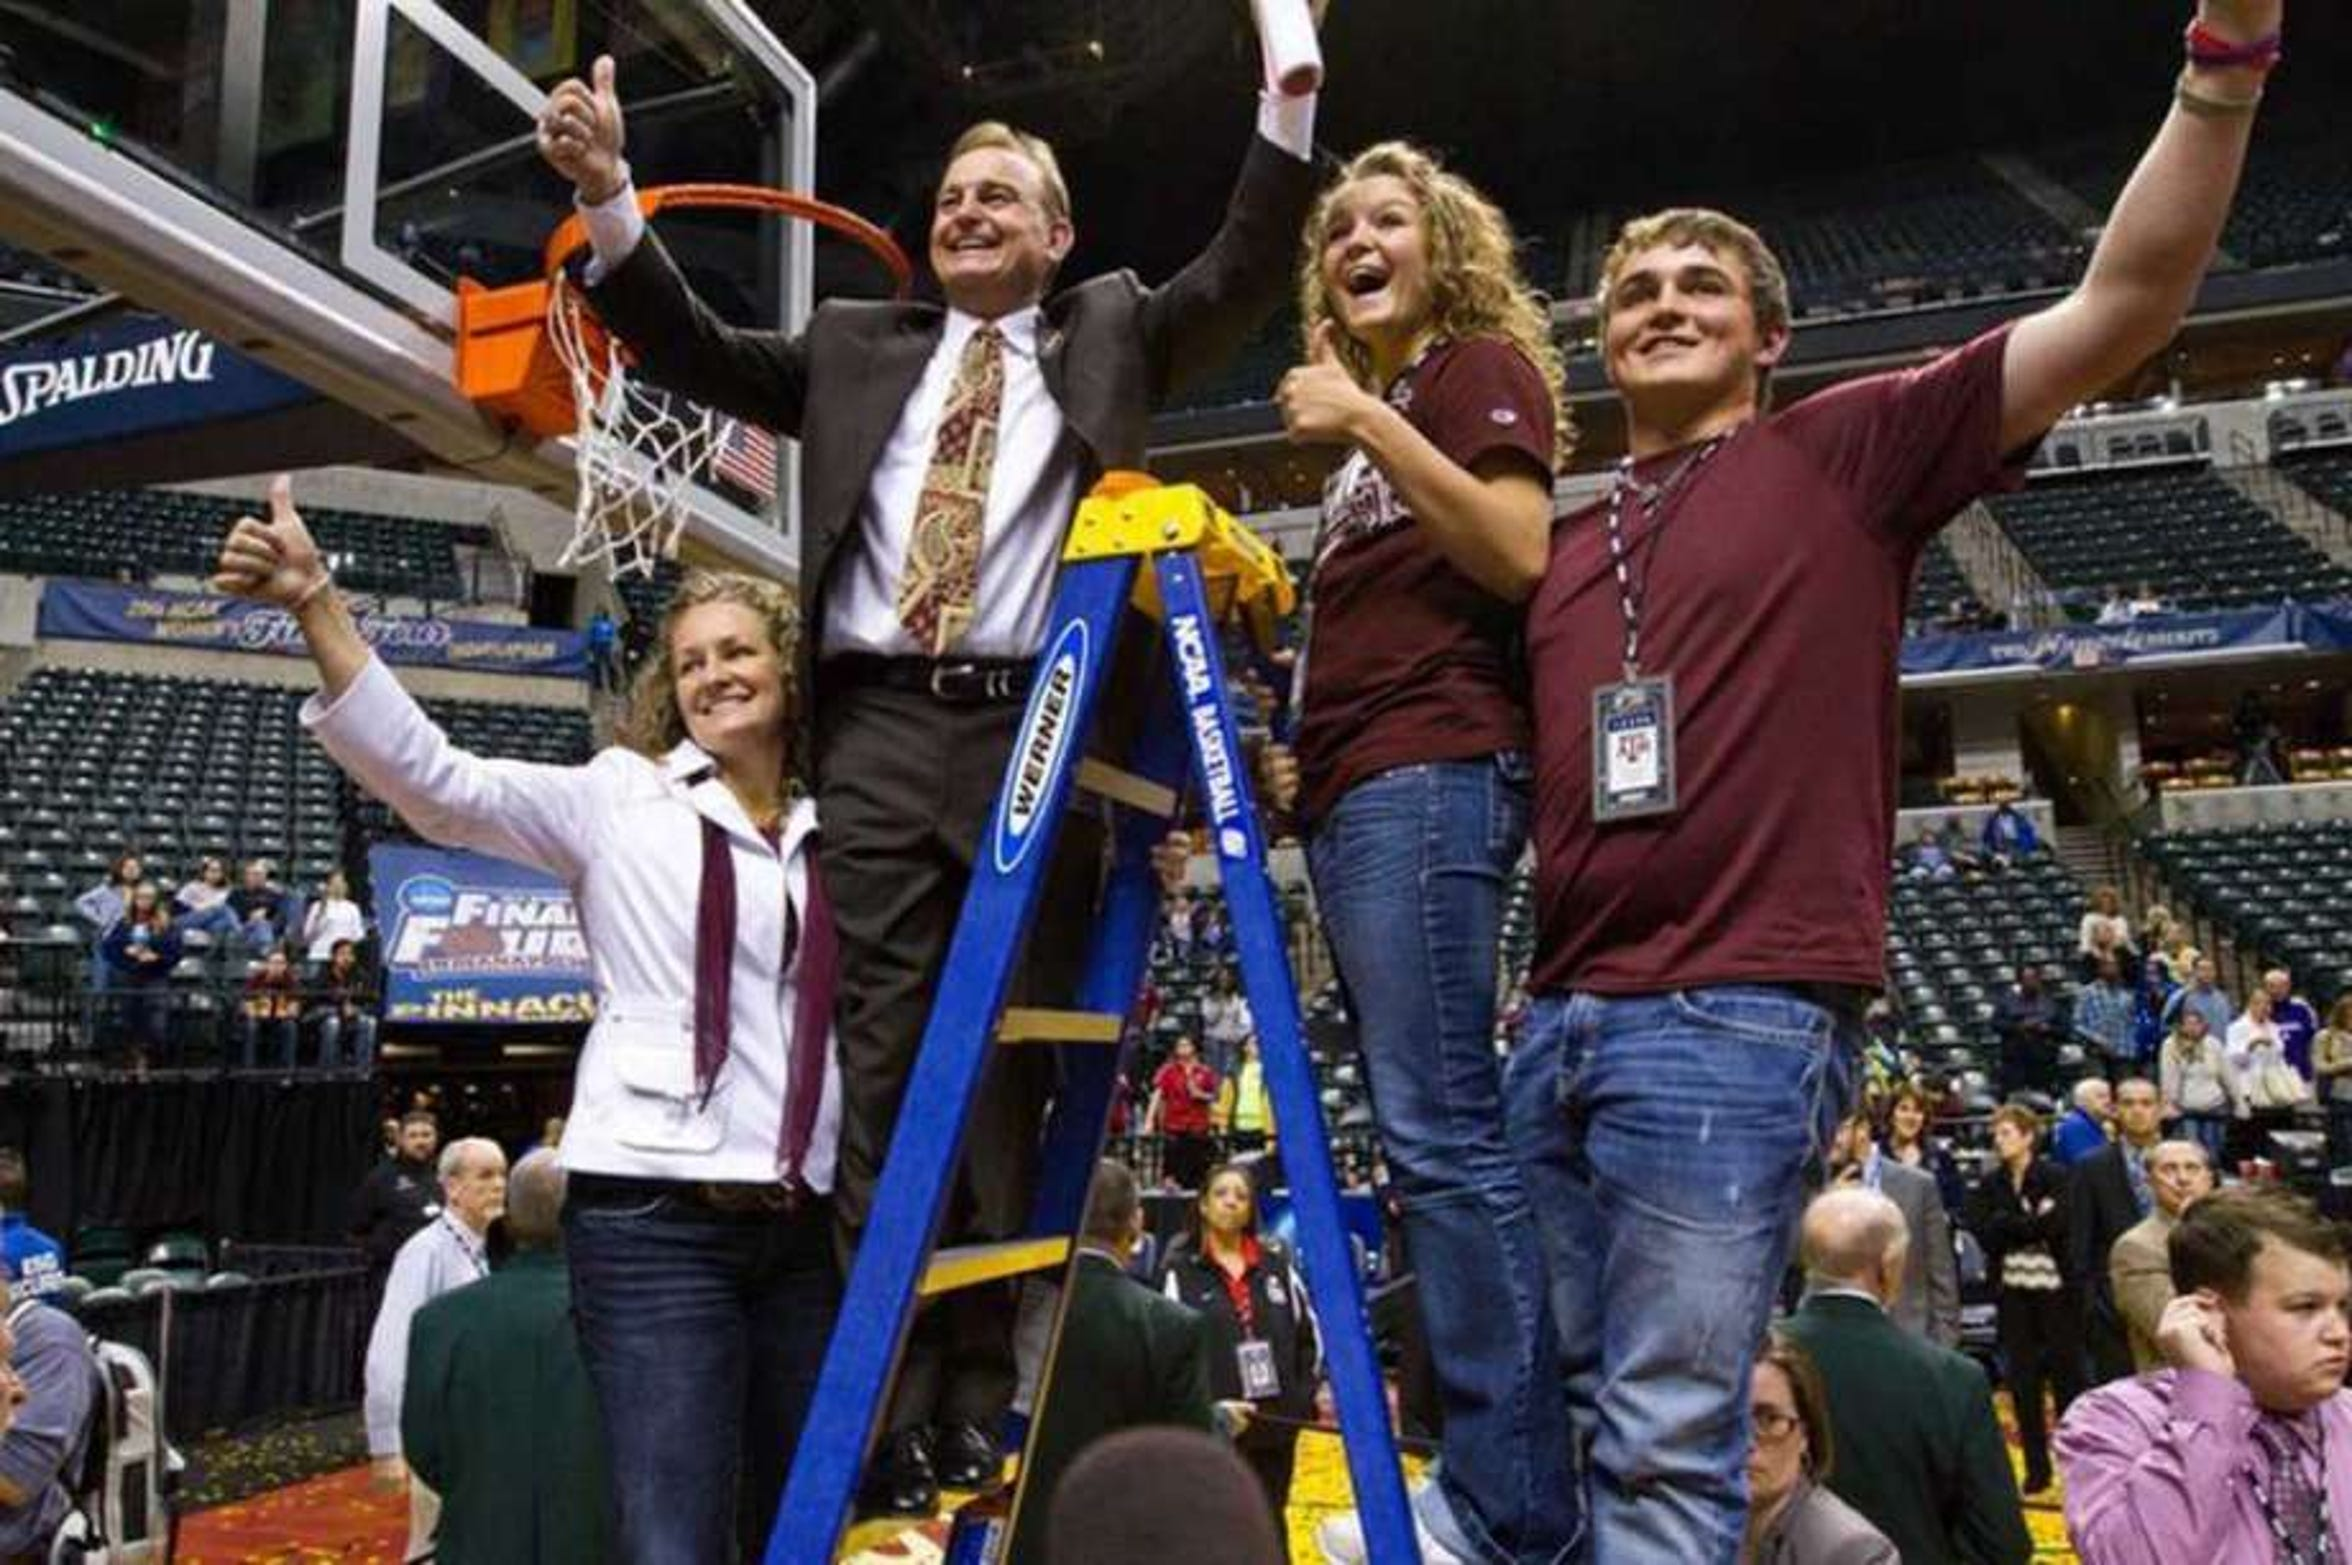 Vic Schaefer and his wife Holly (far left) and twin children Blair (middle right) and Logan (far right) celebrate Texas A&M's 2011 national championship. Schaefer was Gary Blair's associate head coach at A&M.